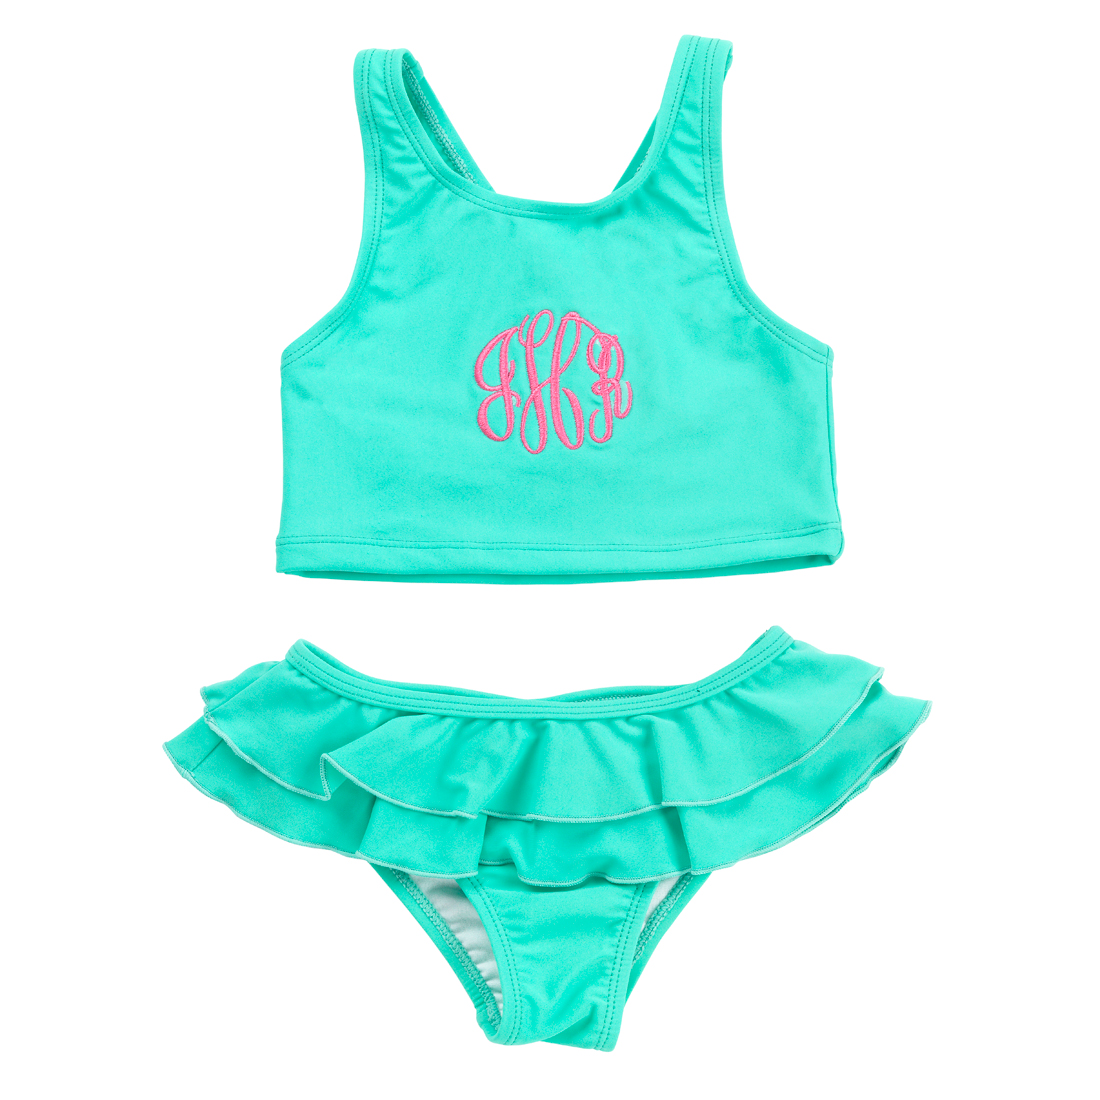 Monogrammed Mint Swimsuit Set for Girls